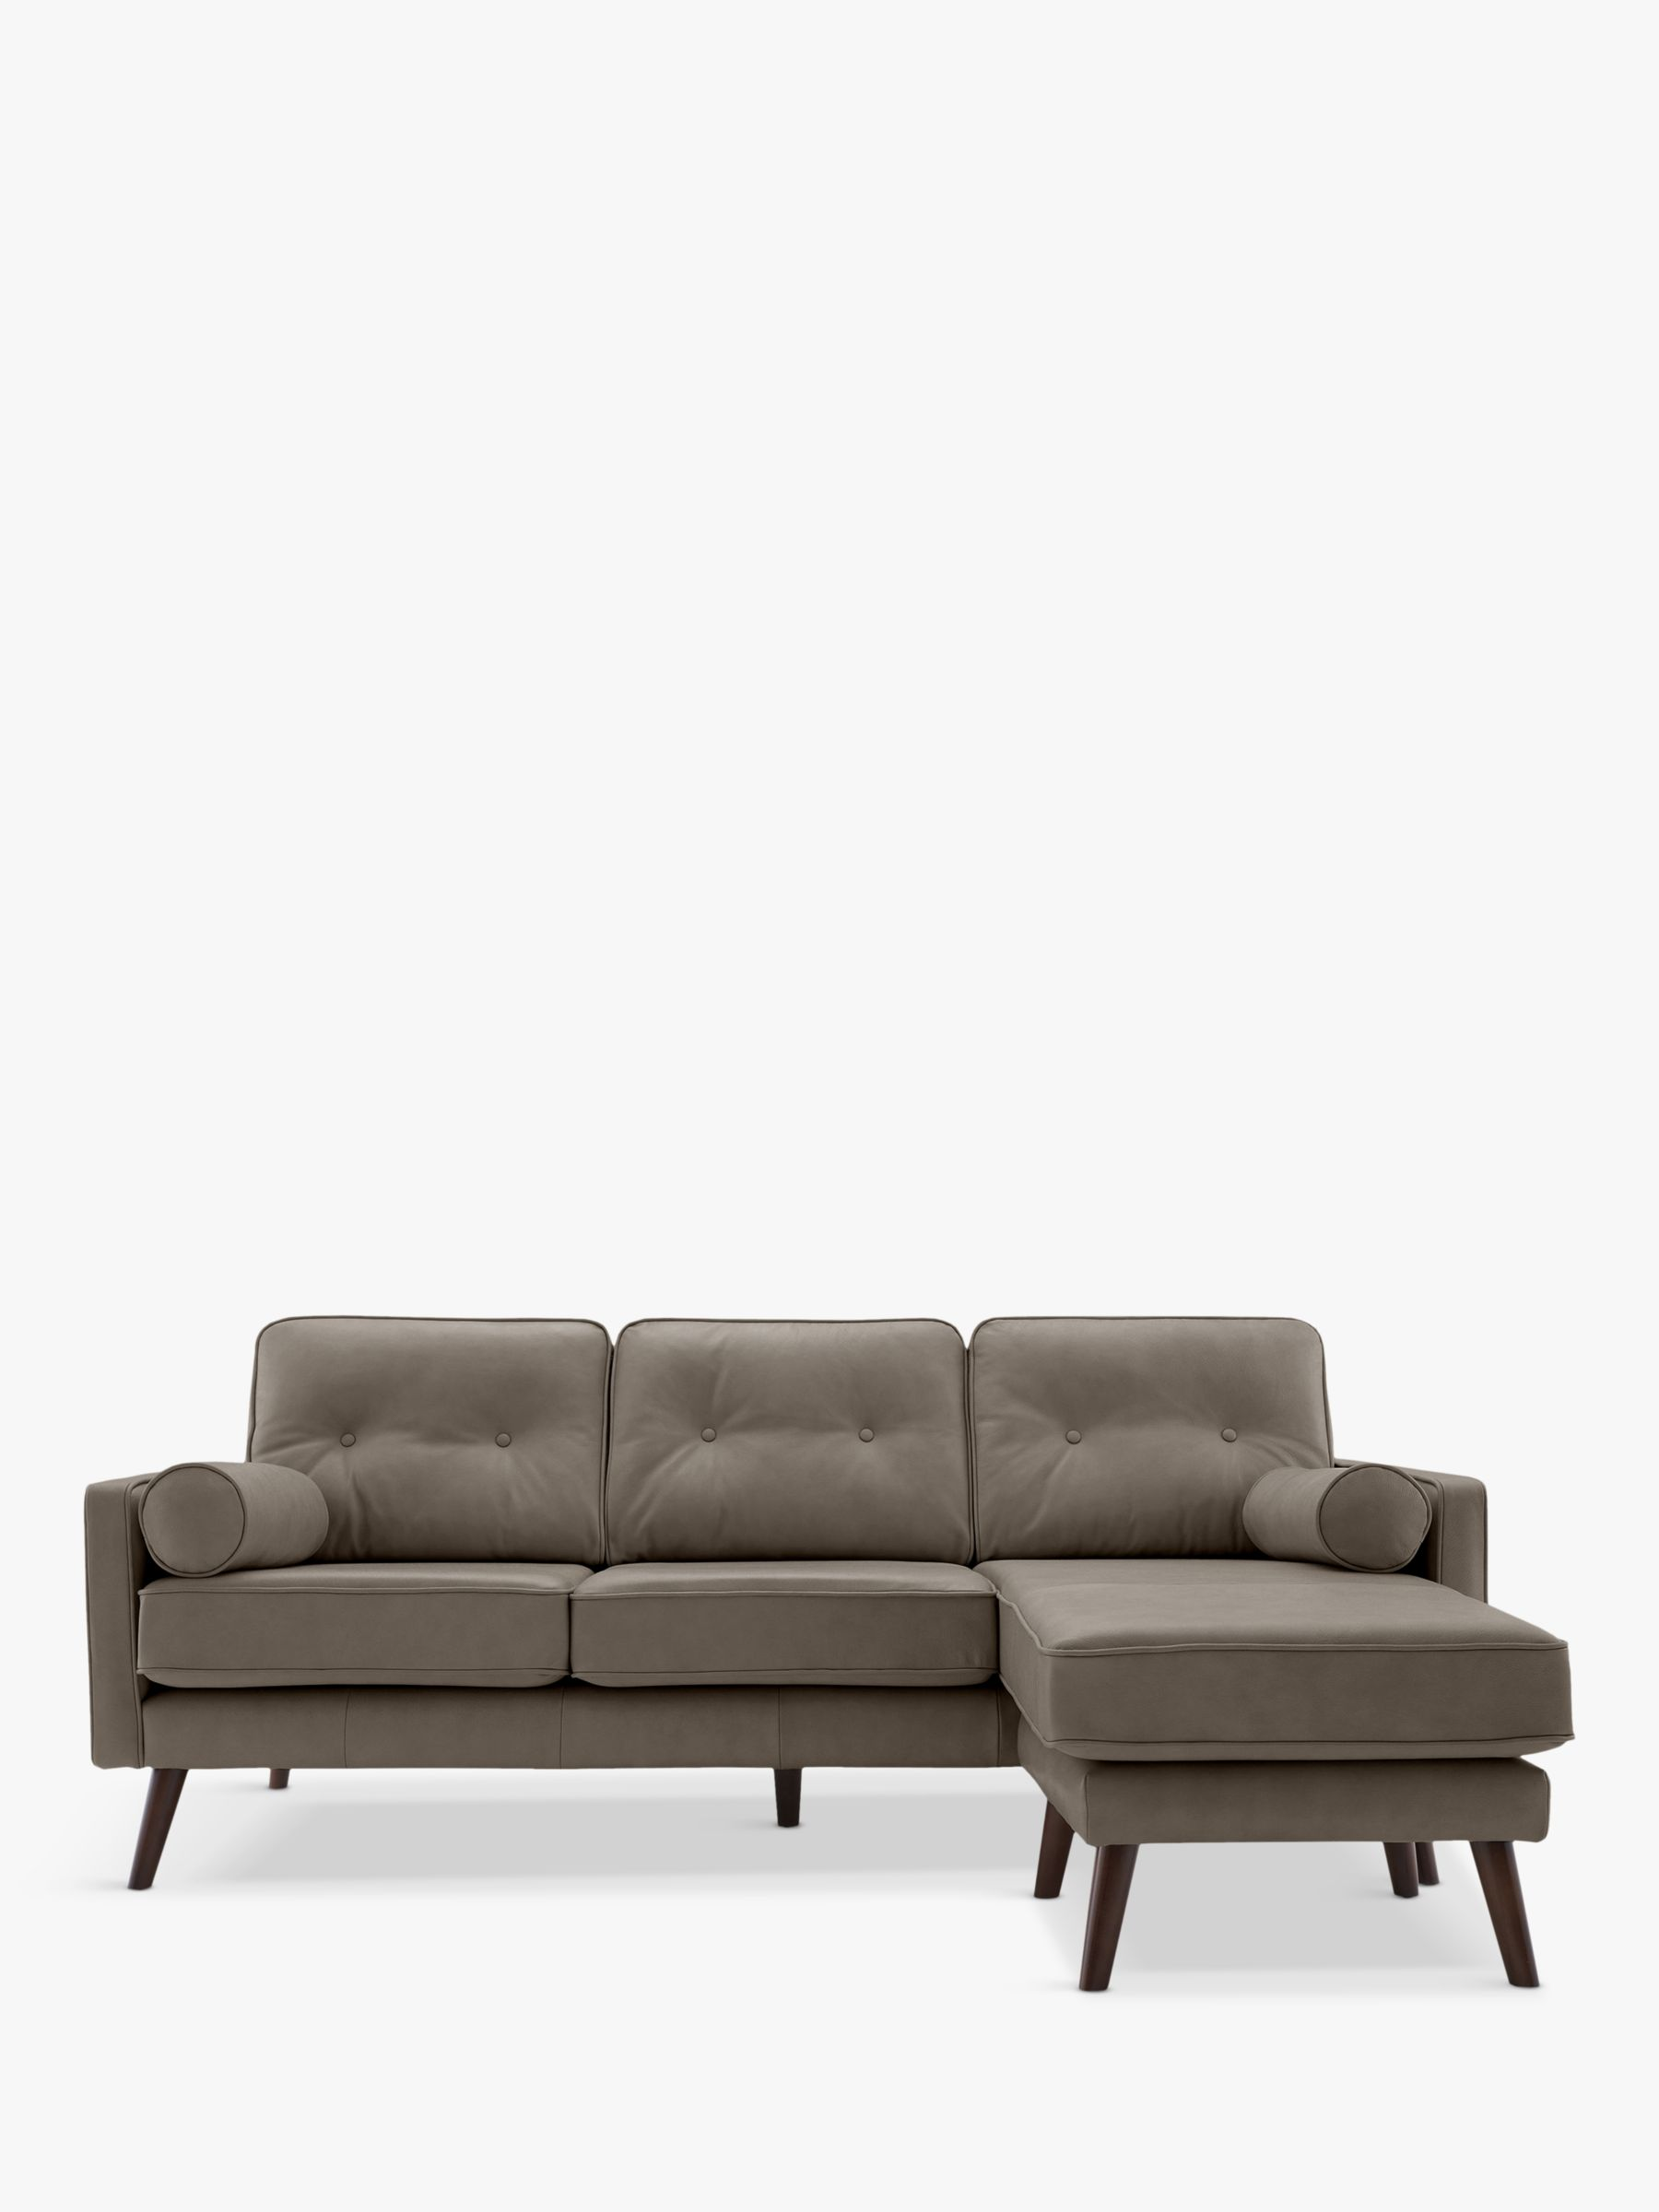 G Plan Vintage G Plan Vintage The Sixty Five Large 3 Seater Chaise End Leather Sofa